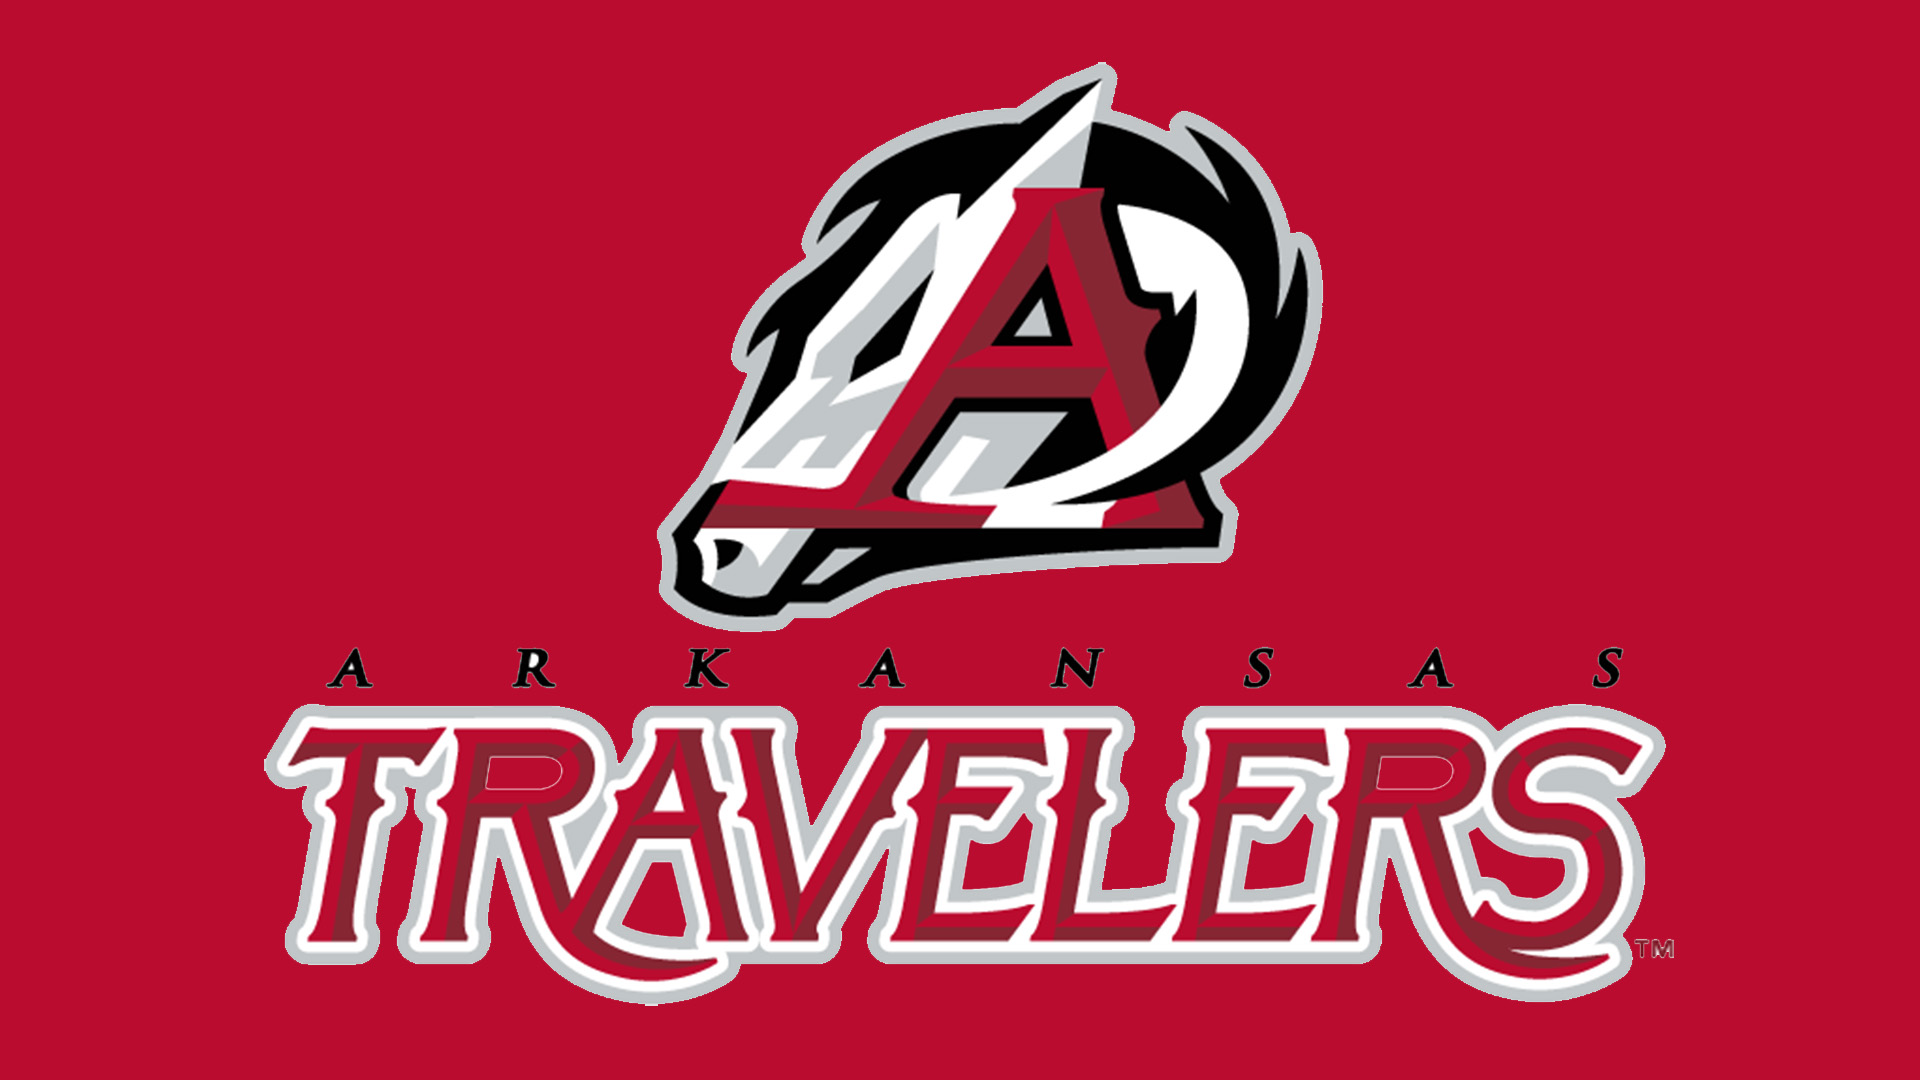 Meaning Arkansas Travelers logo and symbol.